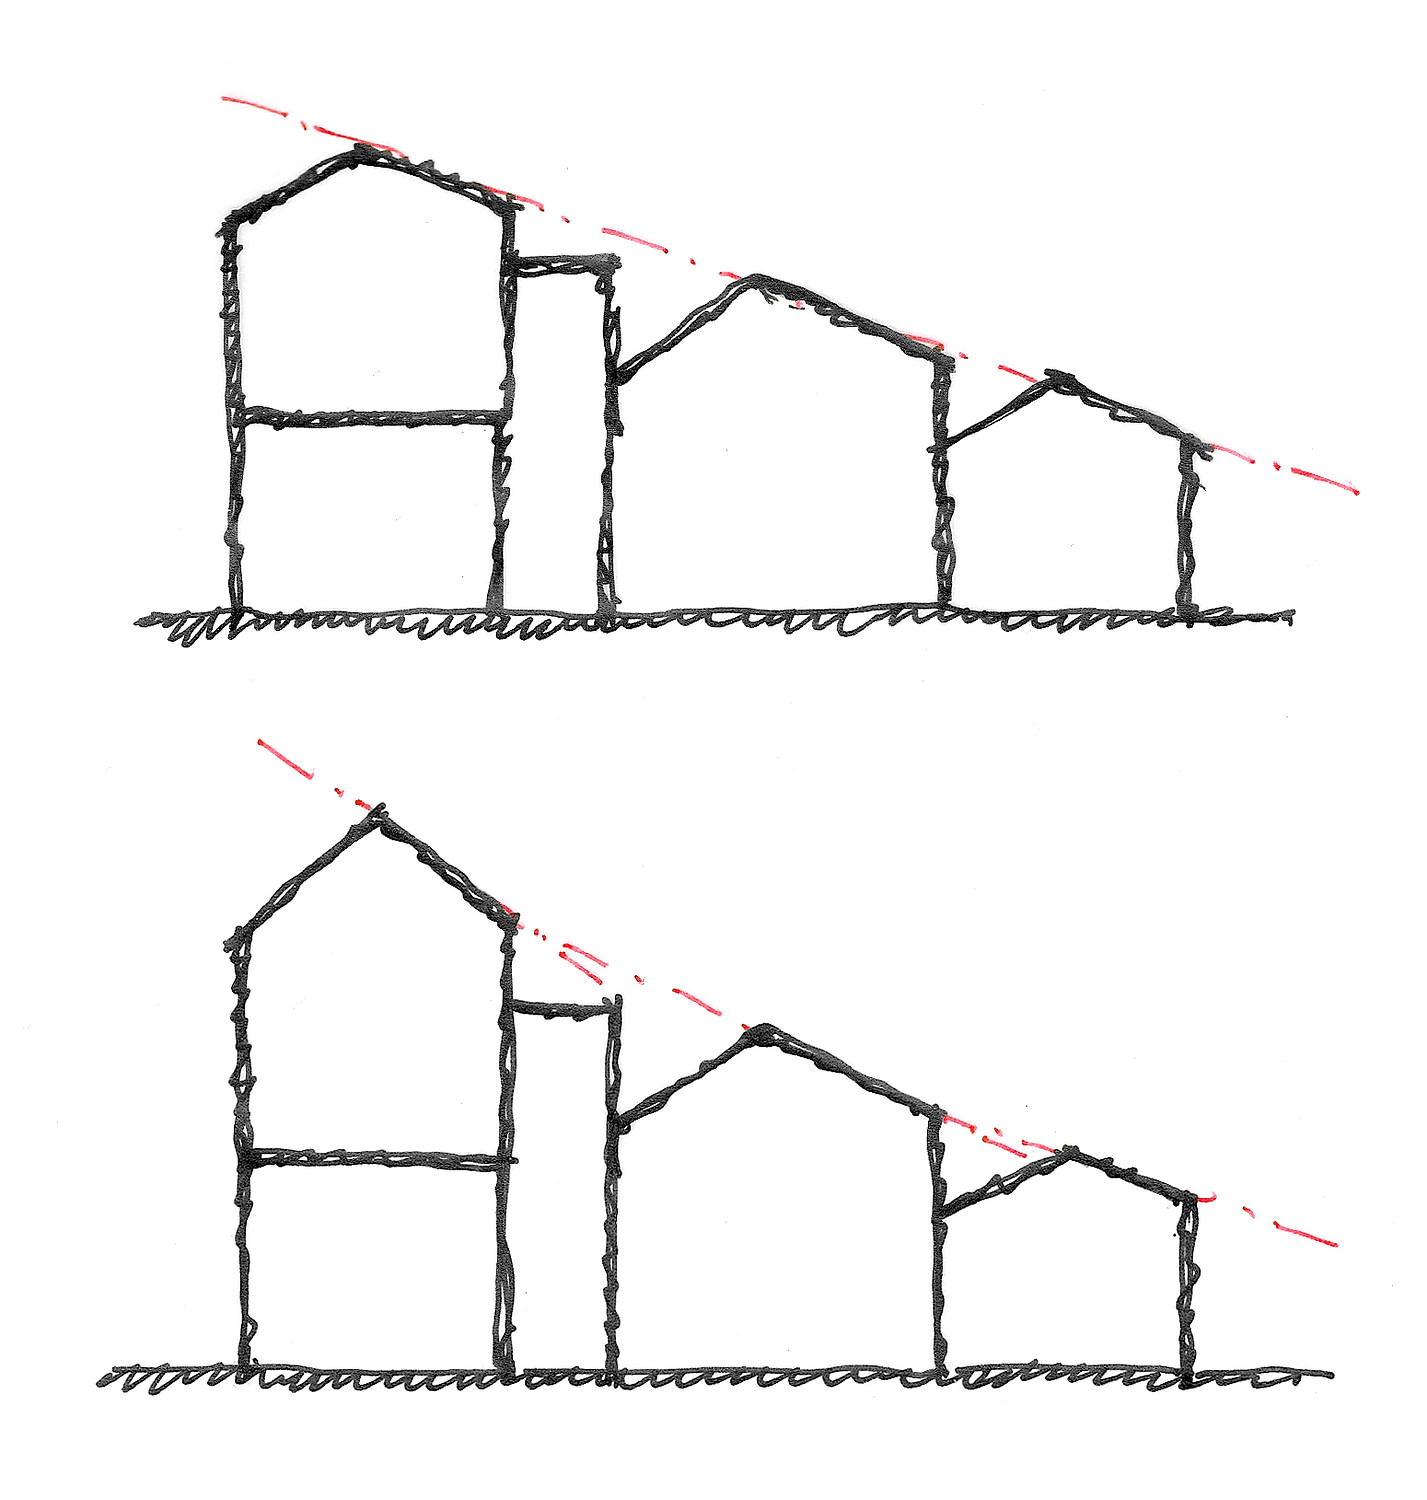 Concept sketches of potential relationships between the separate roofs